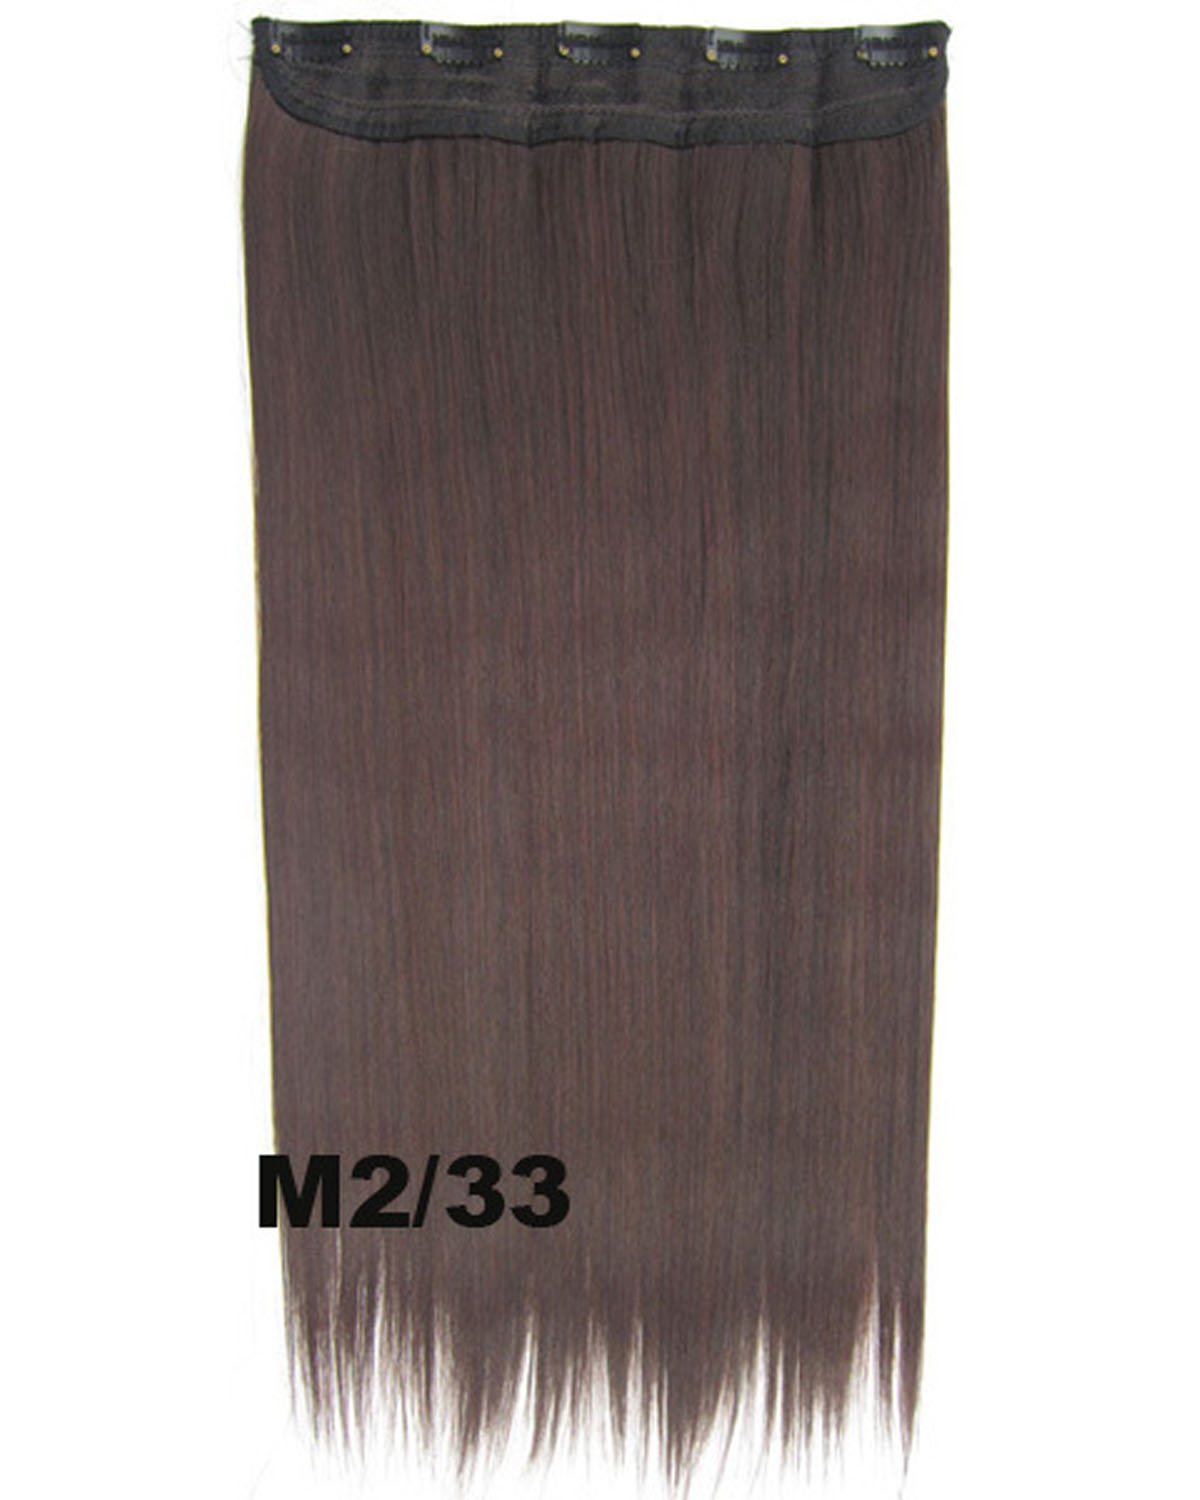 24 inch Women Fashionable Straight and Long One Piece 5 Clips Clip in Synthetic Hair Extension M2/33